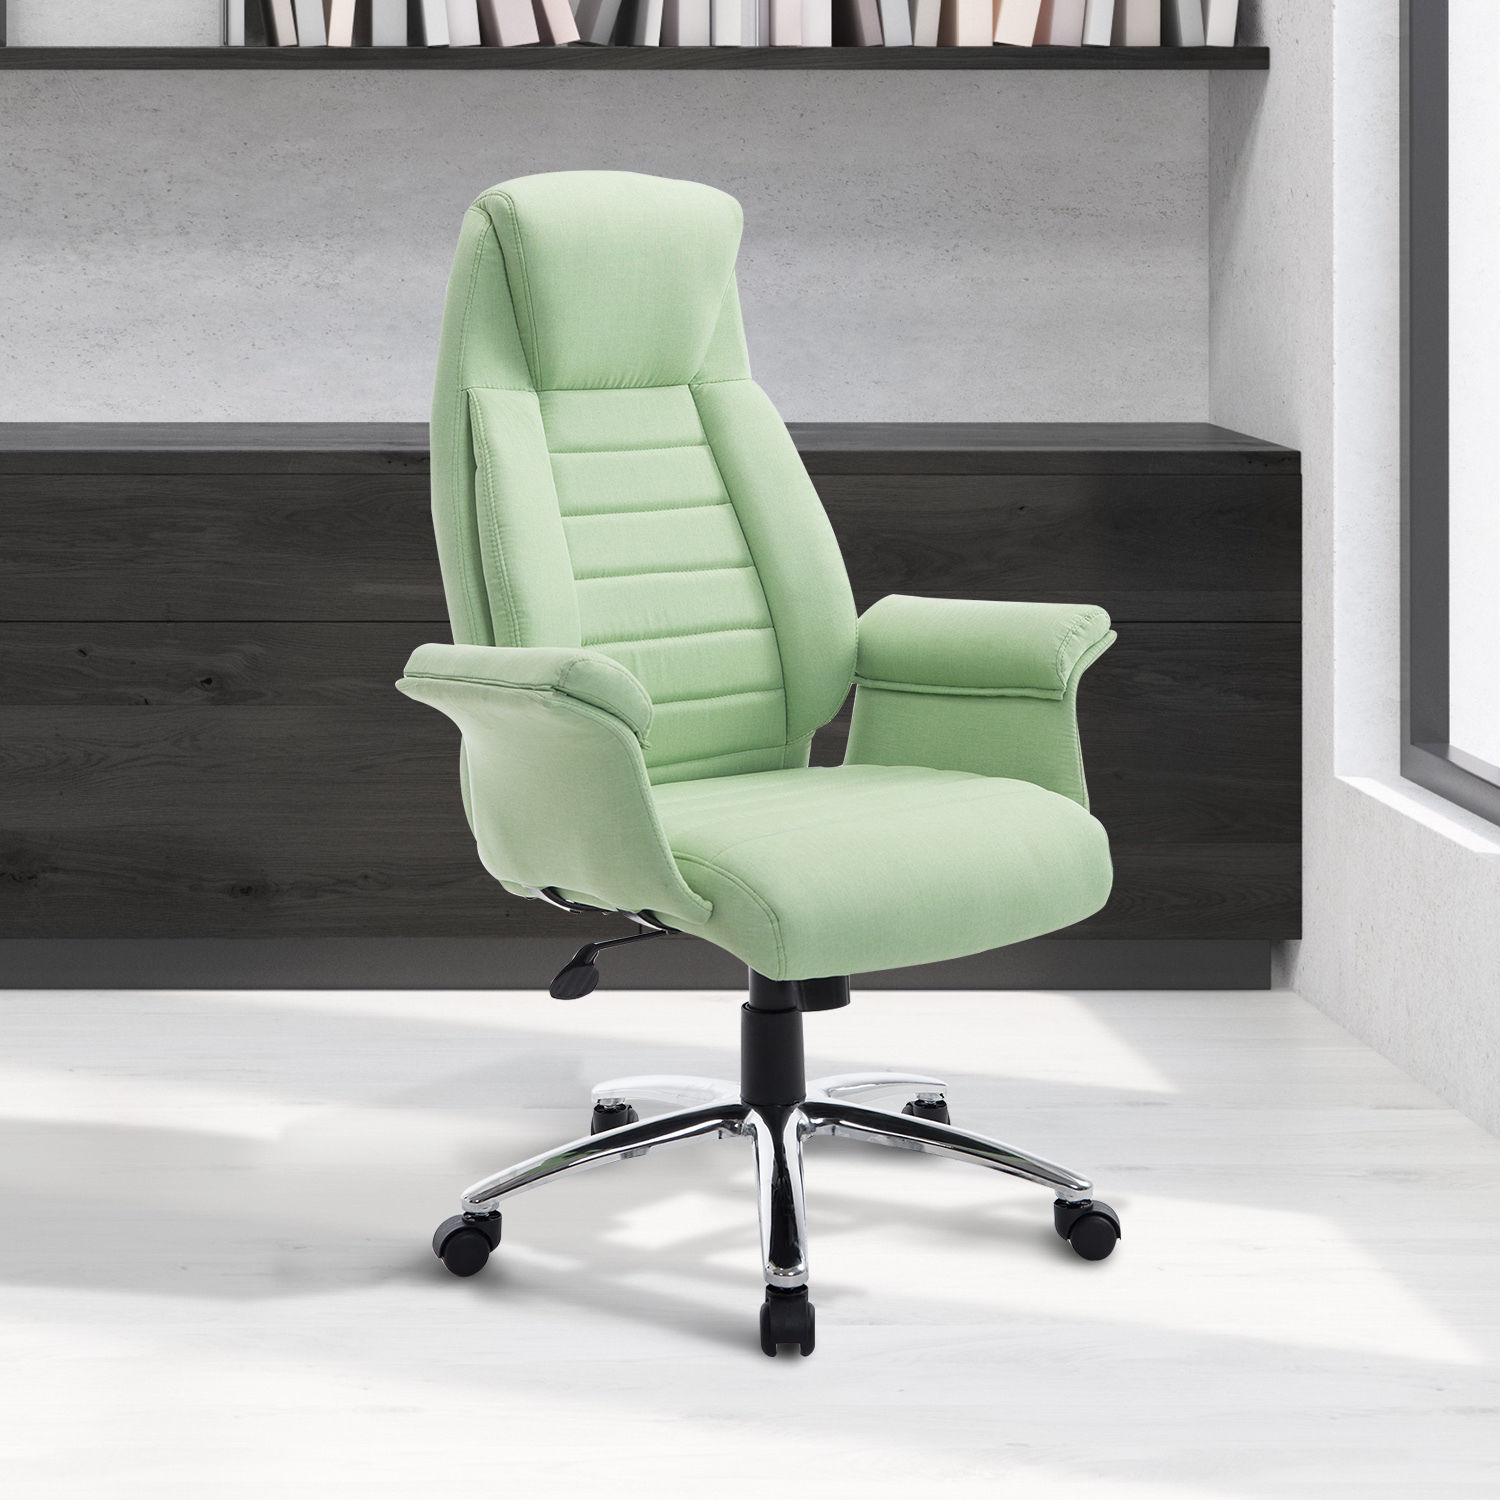 ergonomic office chair ebay faux leather paint rolling executive high back padded swivel